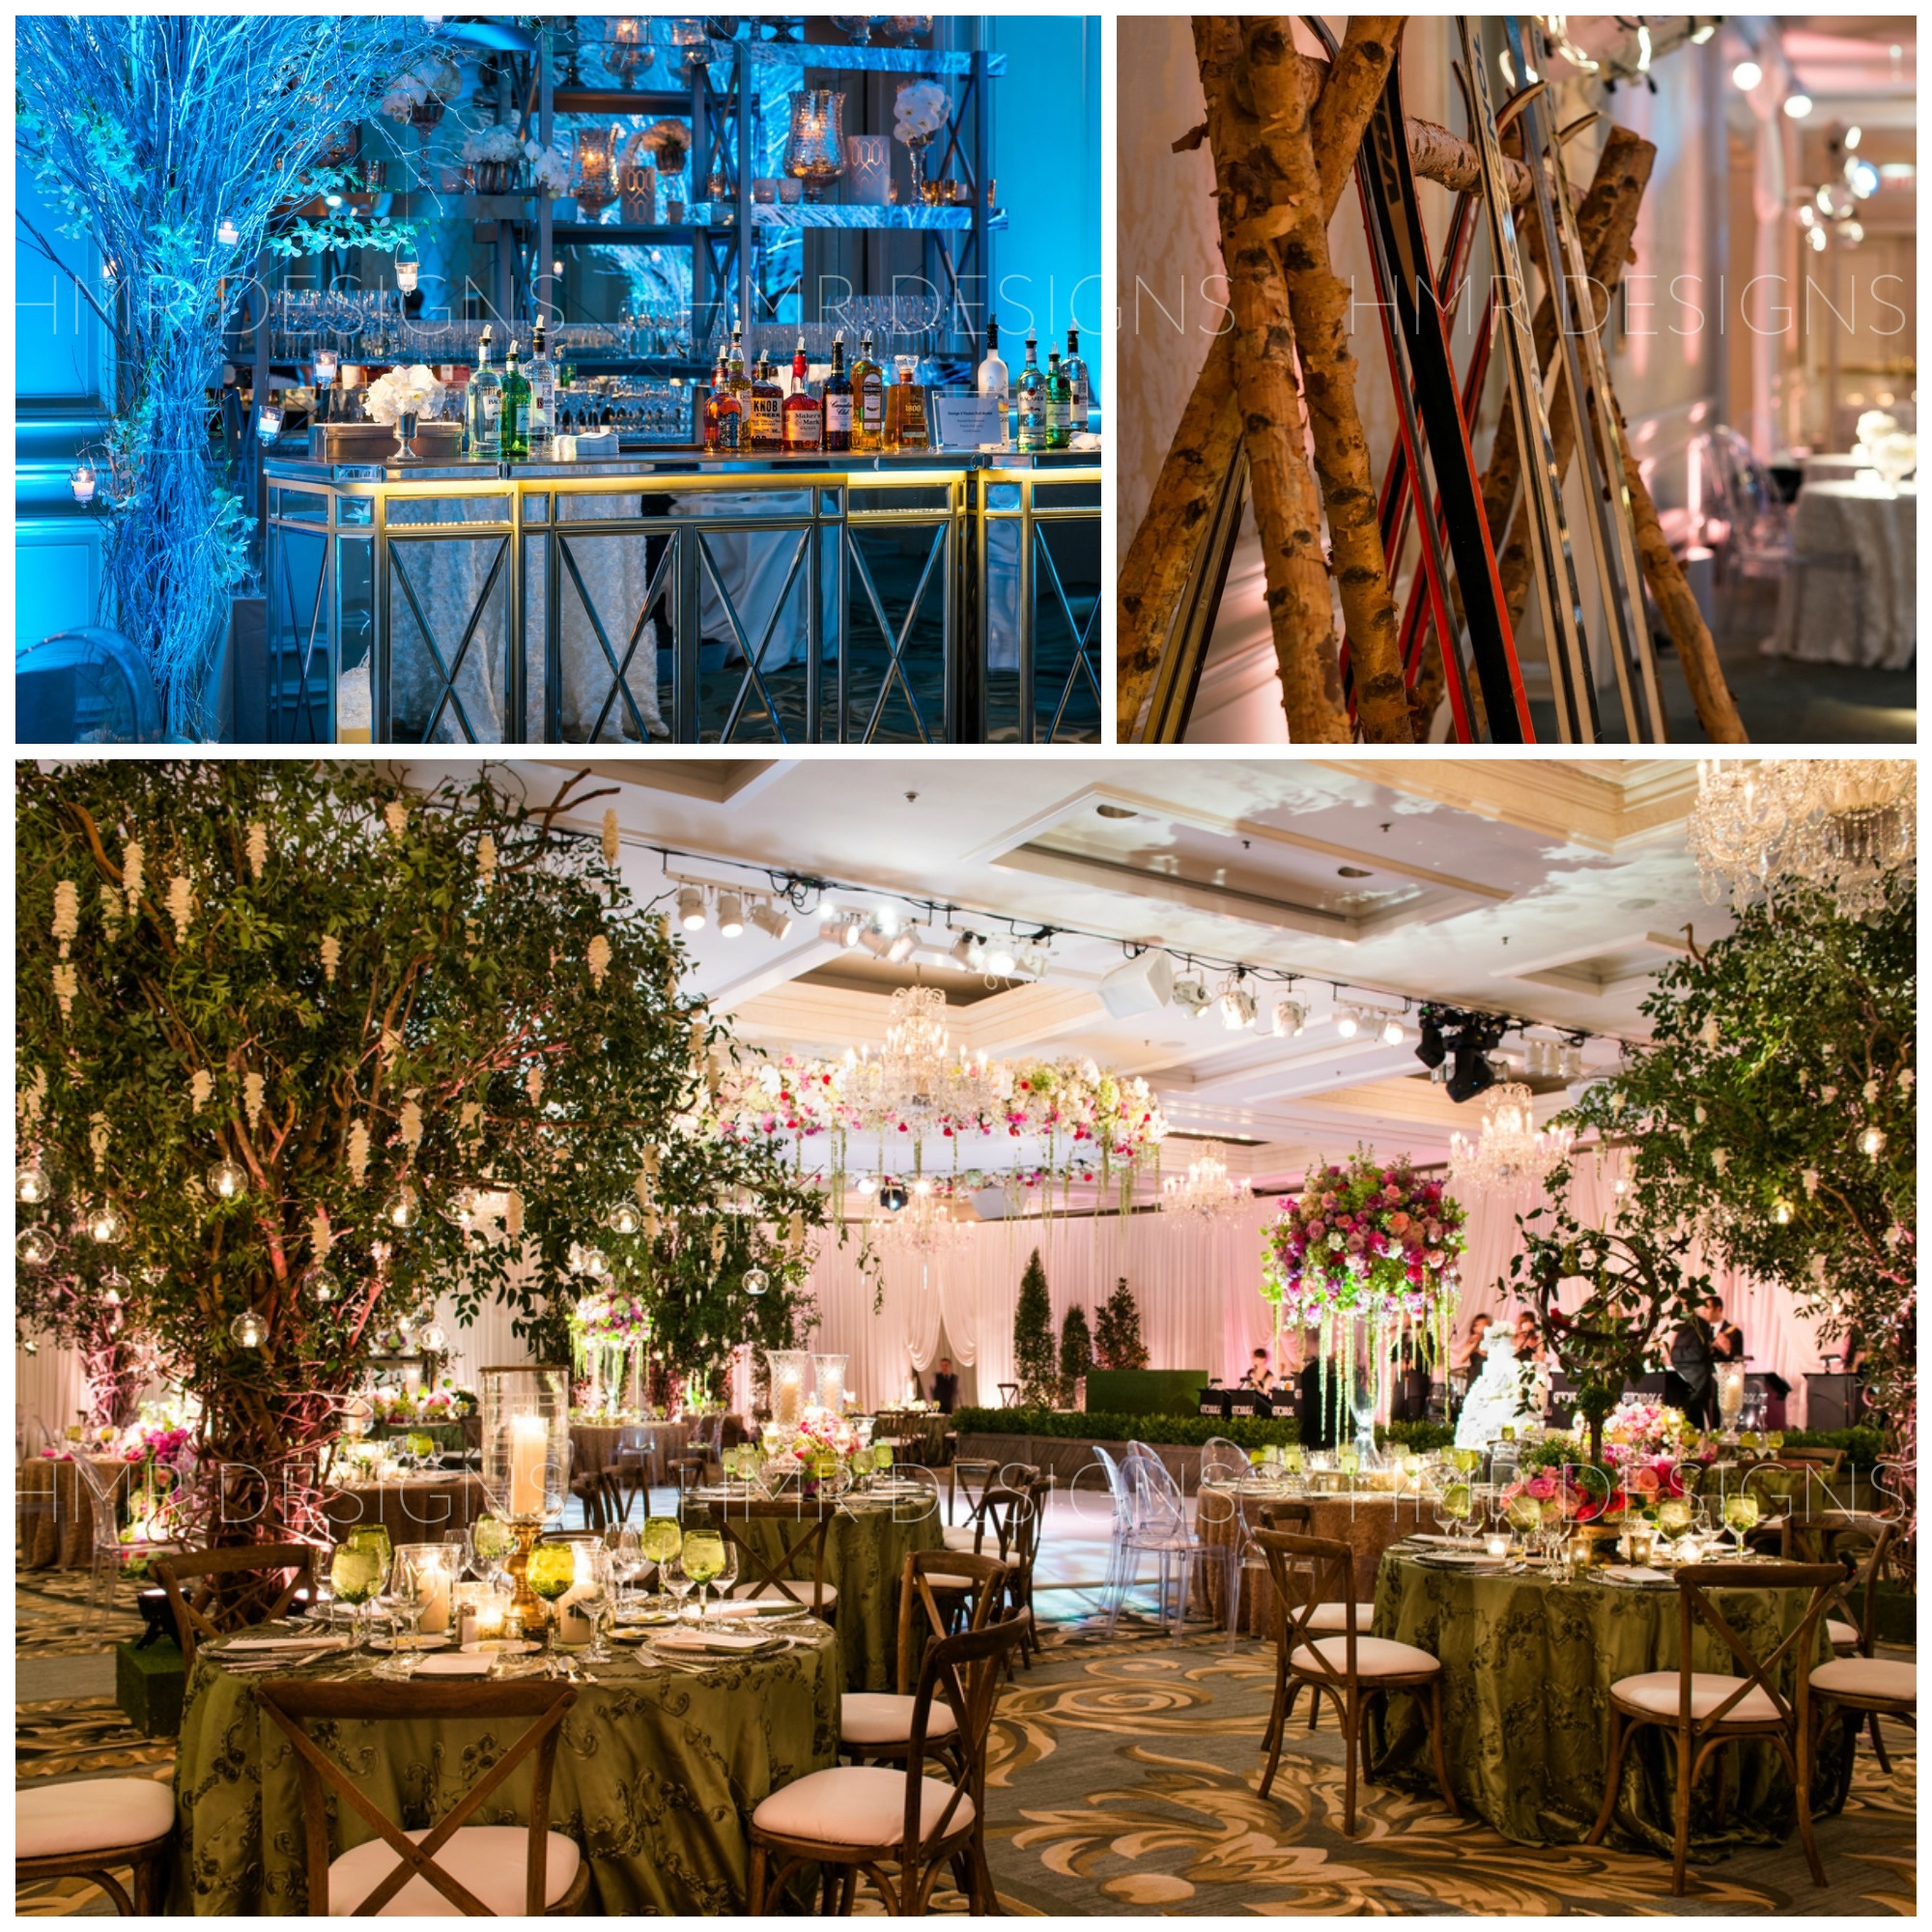 Spring themed wedding at Four Seasons by HMR Designs